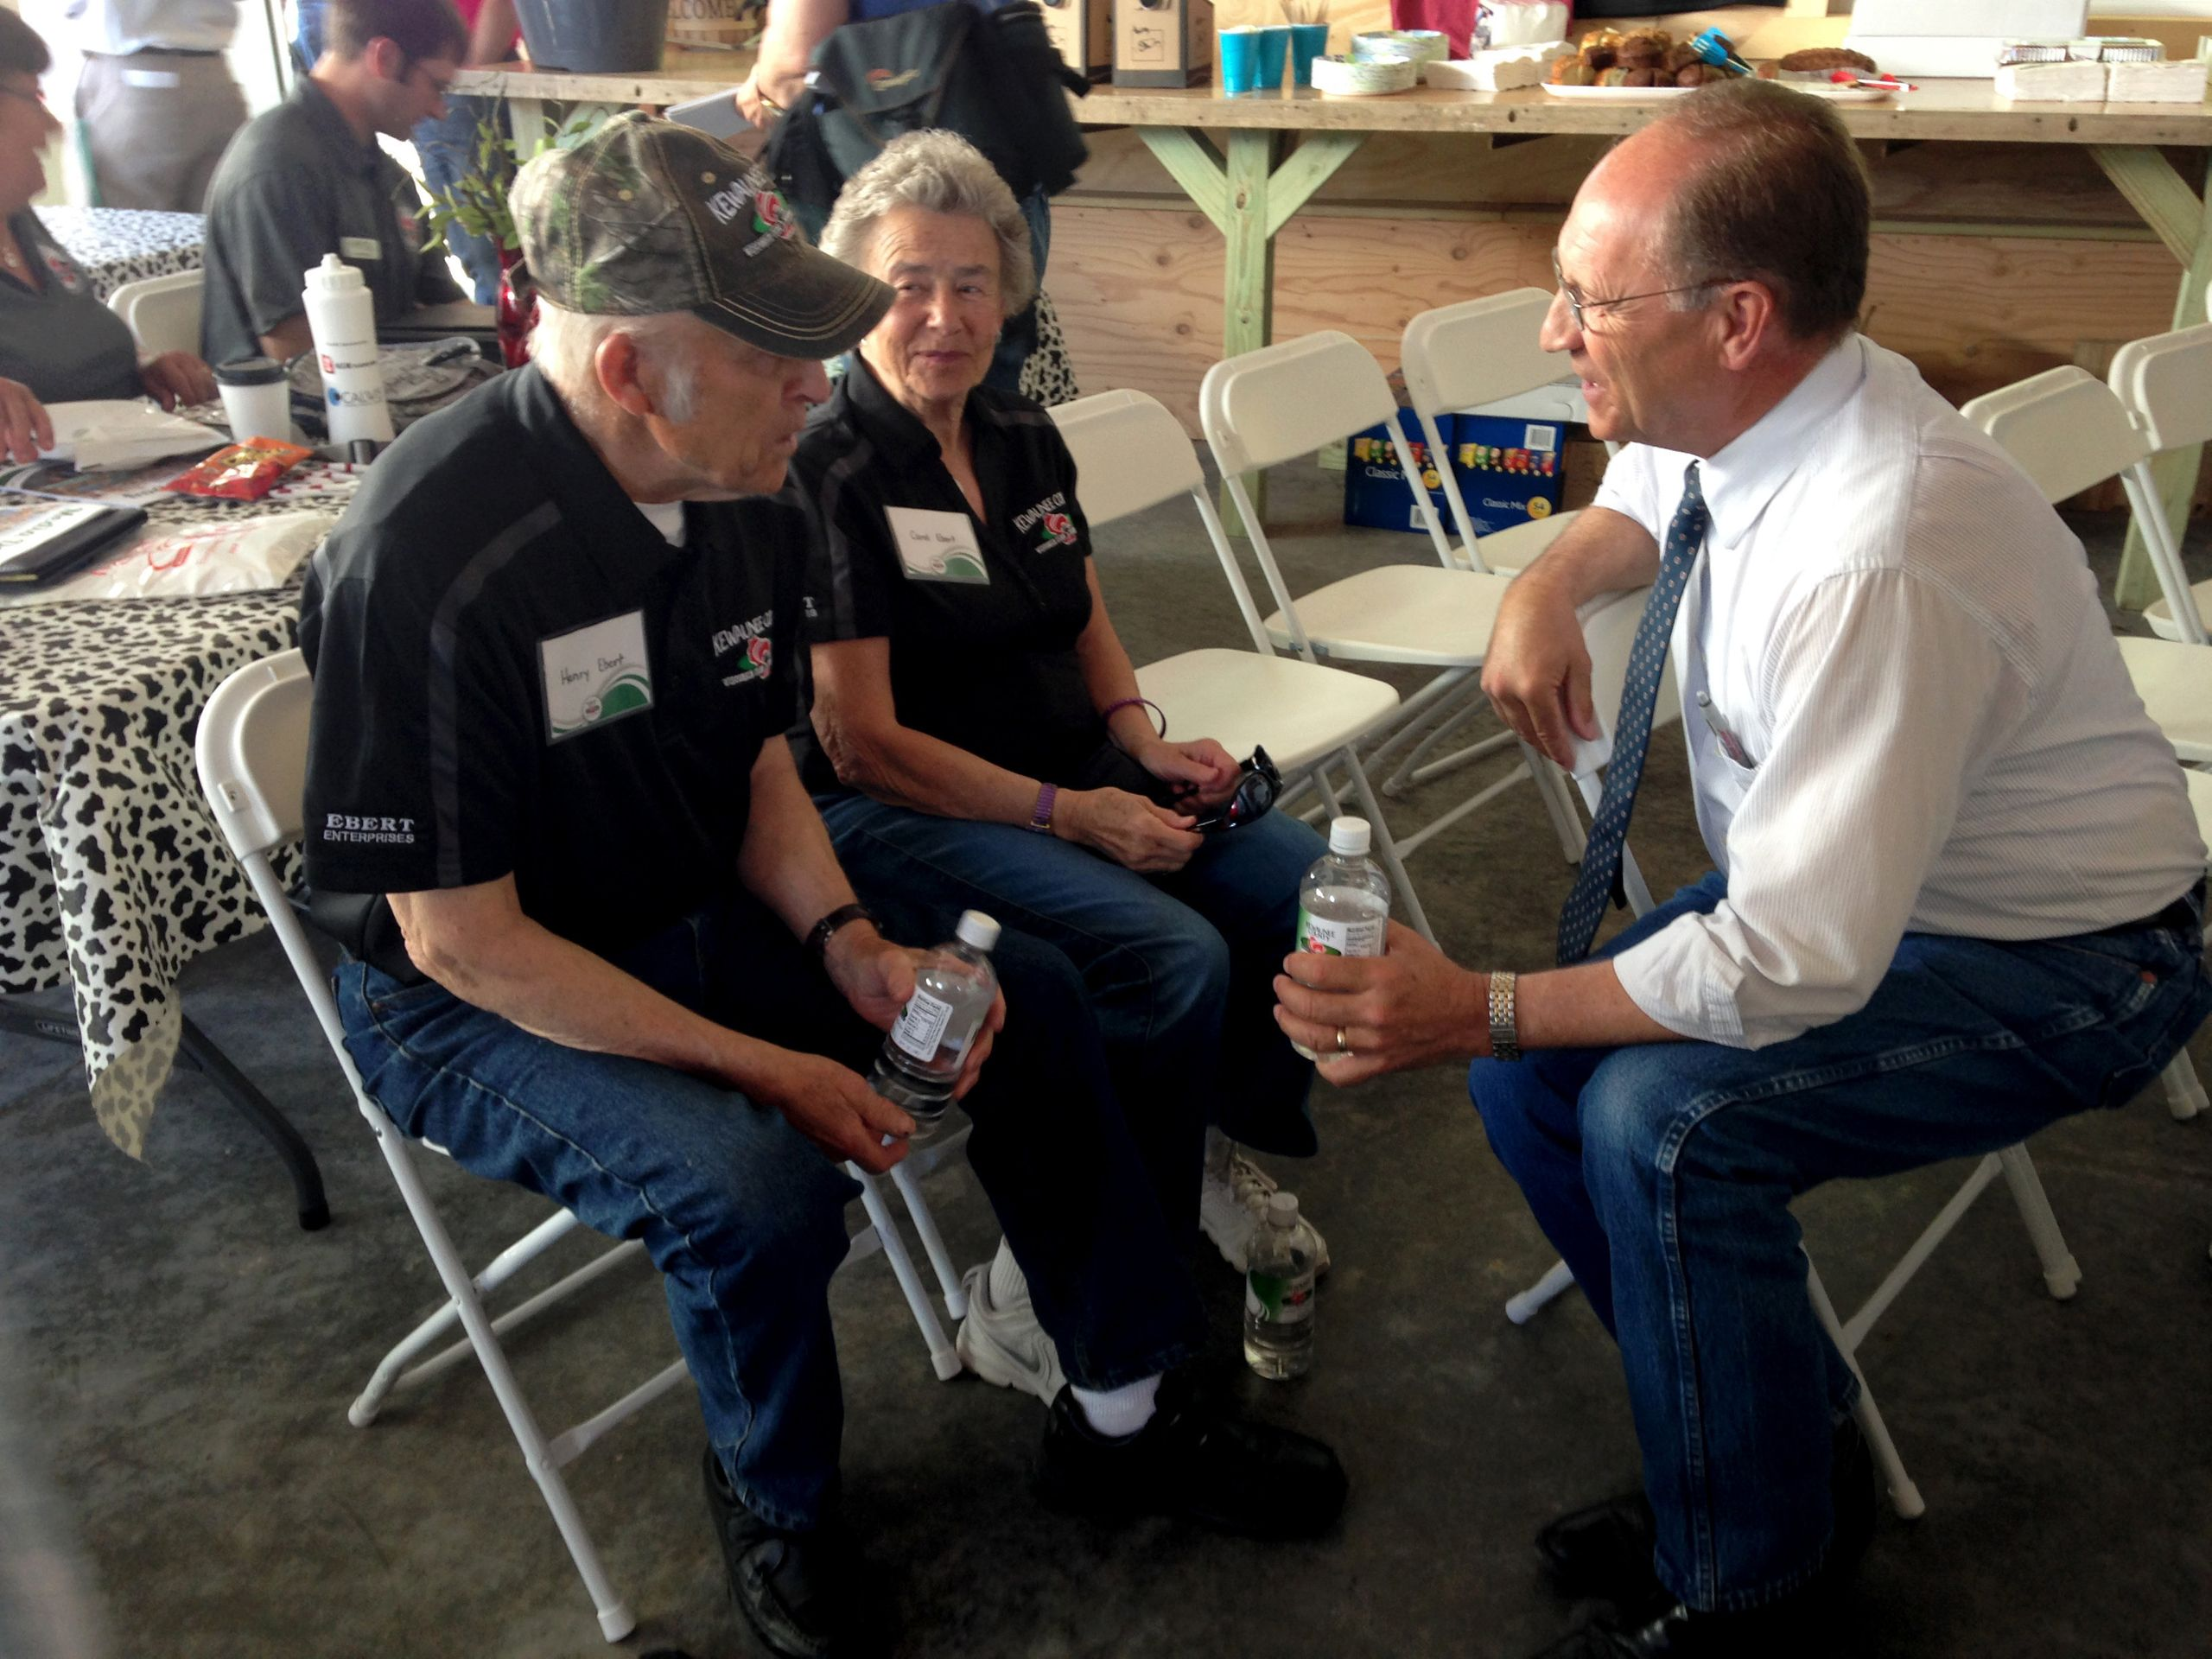 Then-Wisconsin Agriculture Secretary Ben Brancel meets with Henry and Carol Ebert during Farm Technology Days in Algoma, Wisc